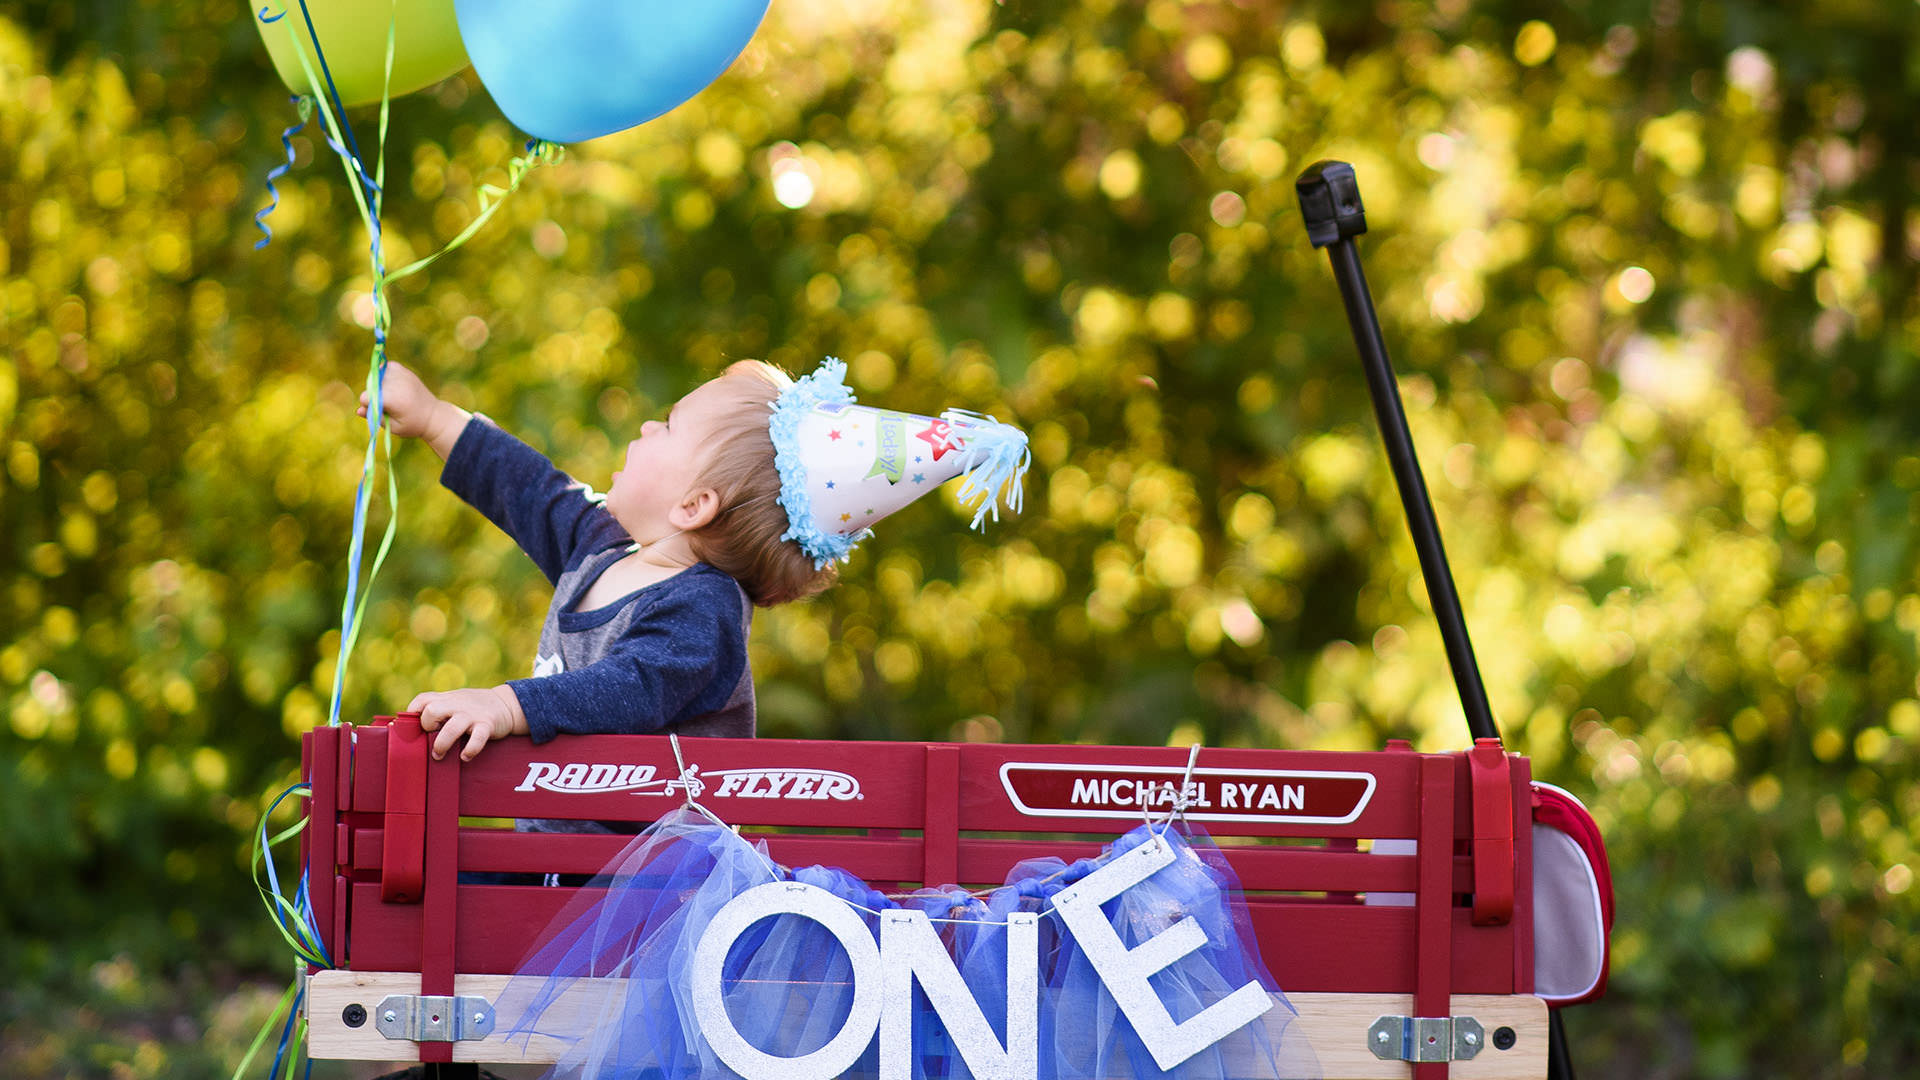 One year old in a wagon reaching for a balloon during a family photography session in Greenville,SC.